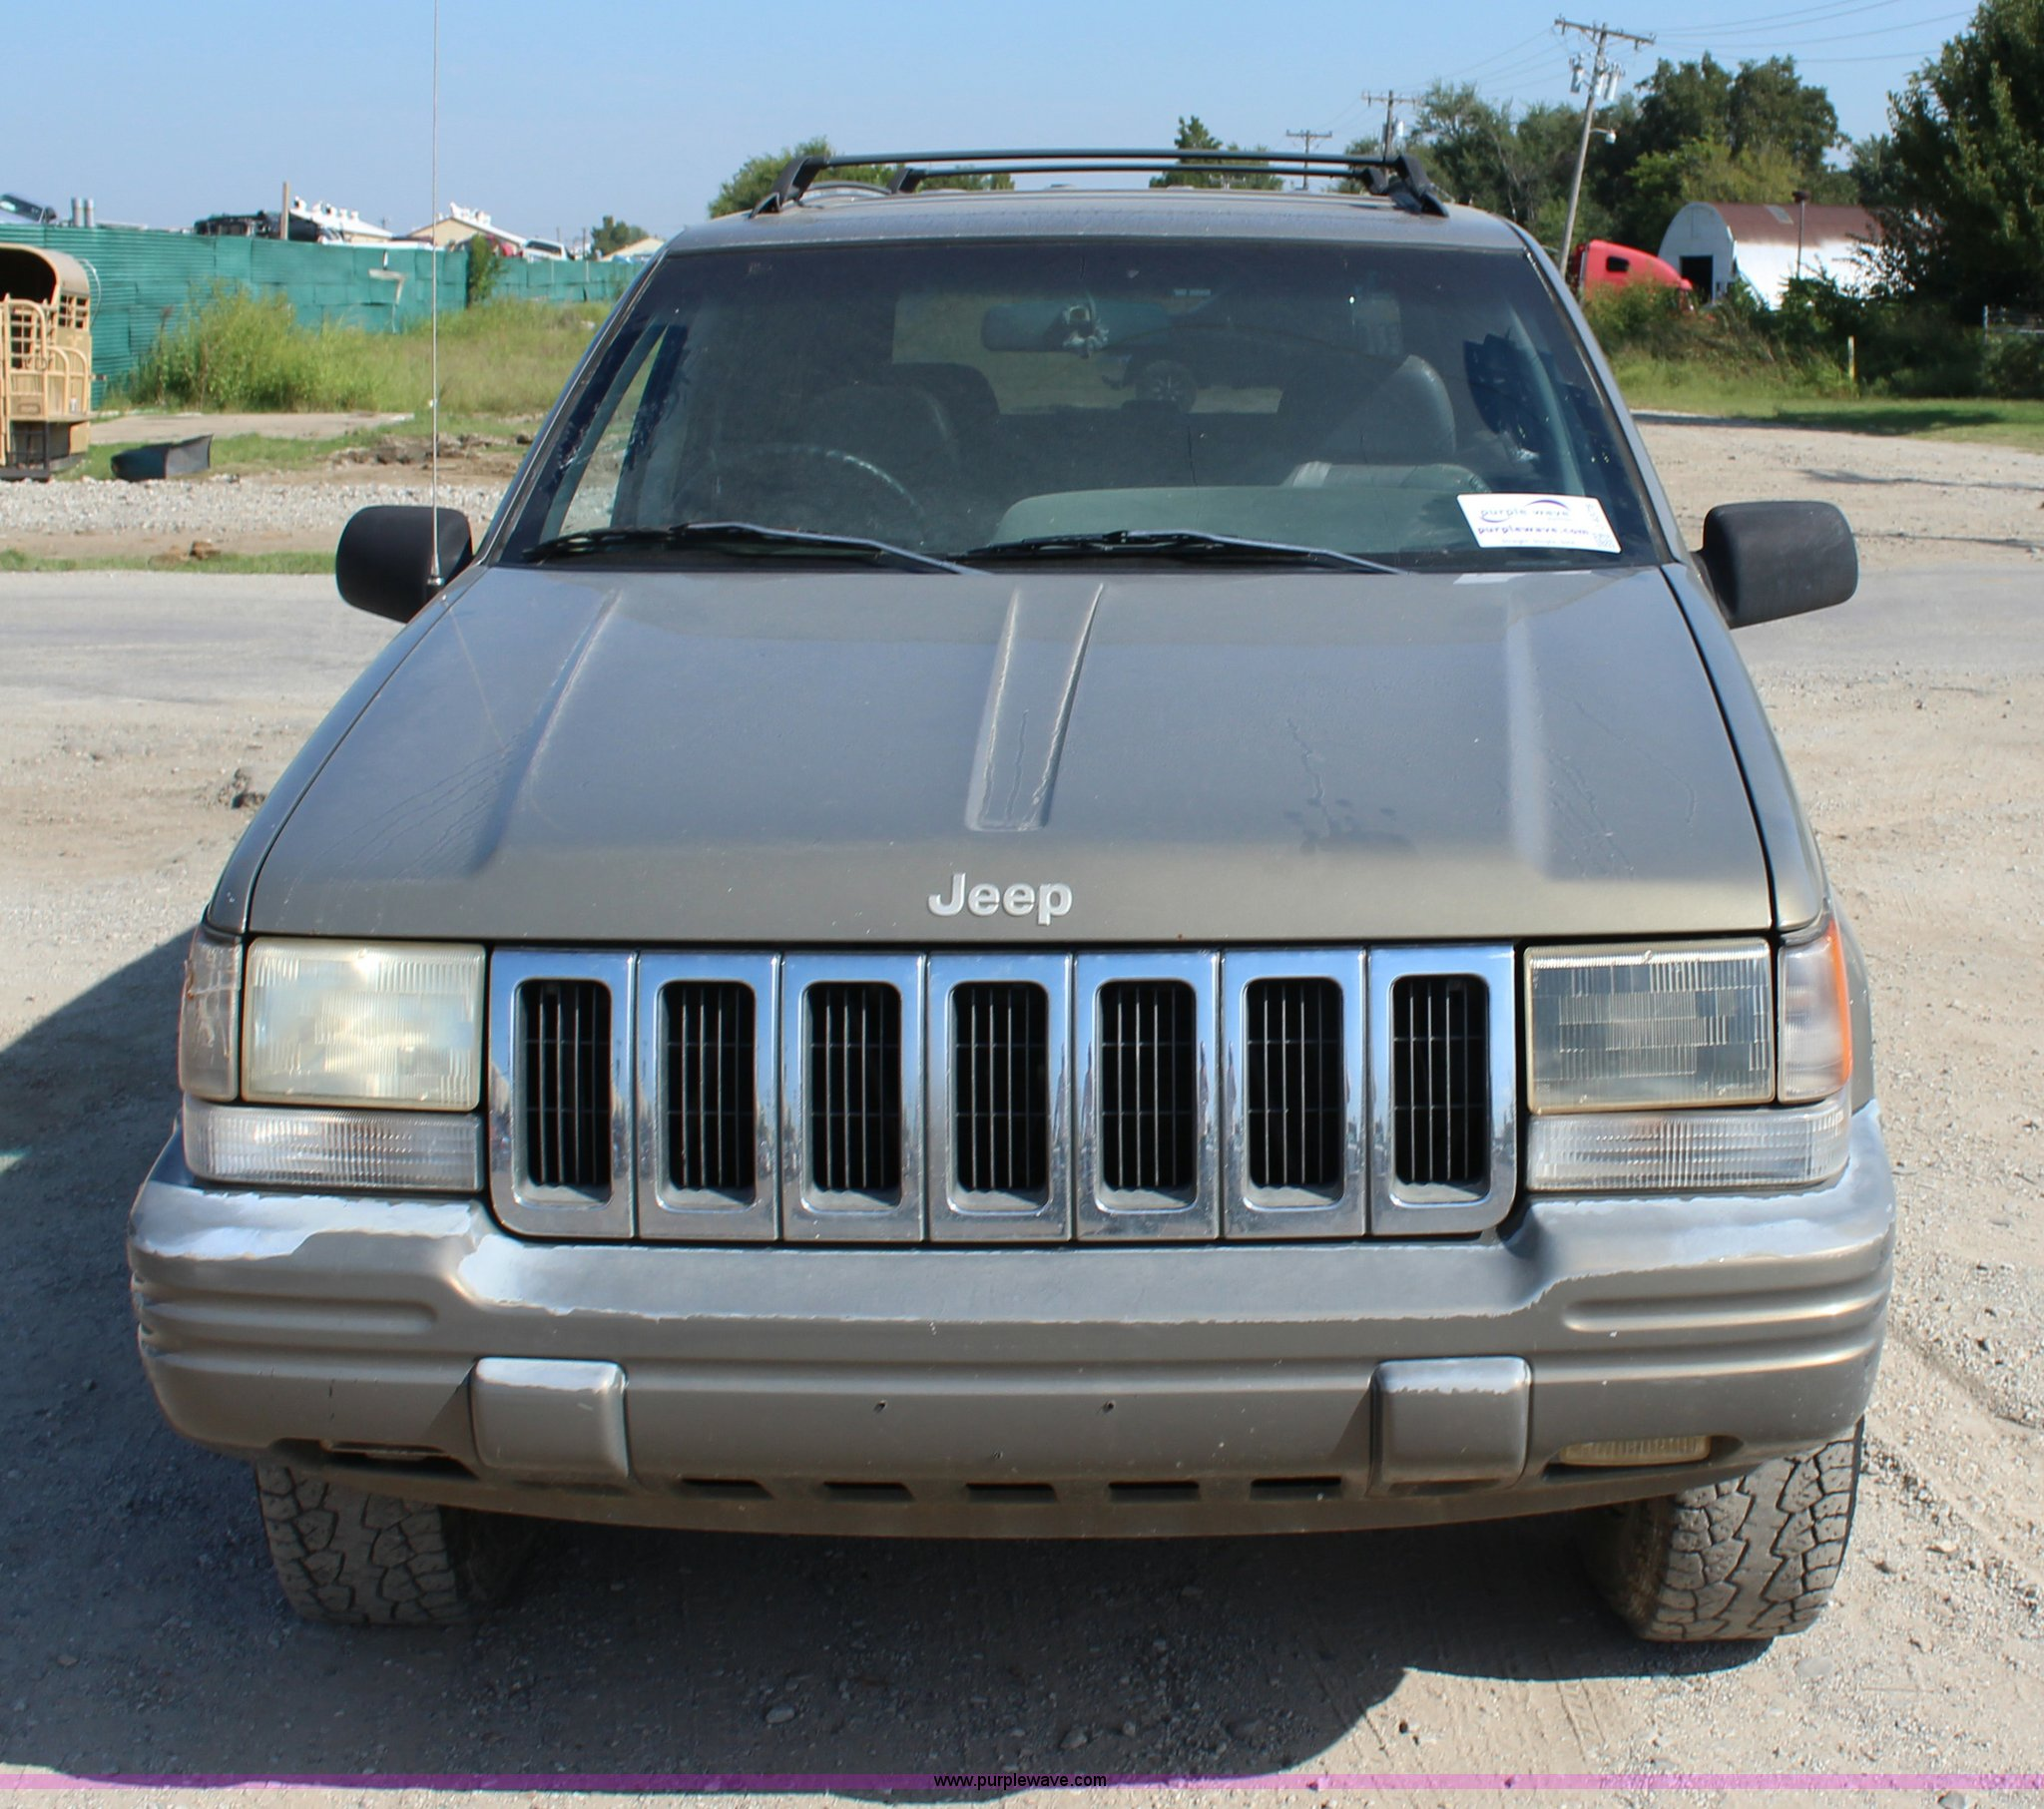 1998 Jeep Grand Cherokee Laredo Suv Item J4378 Sold Oct Full Size In New Window